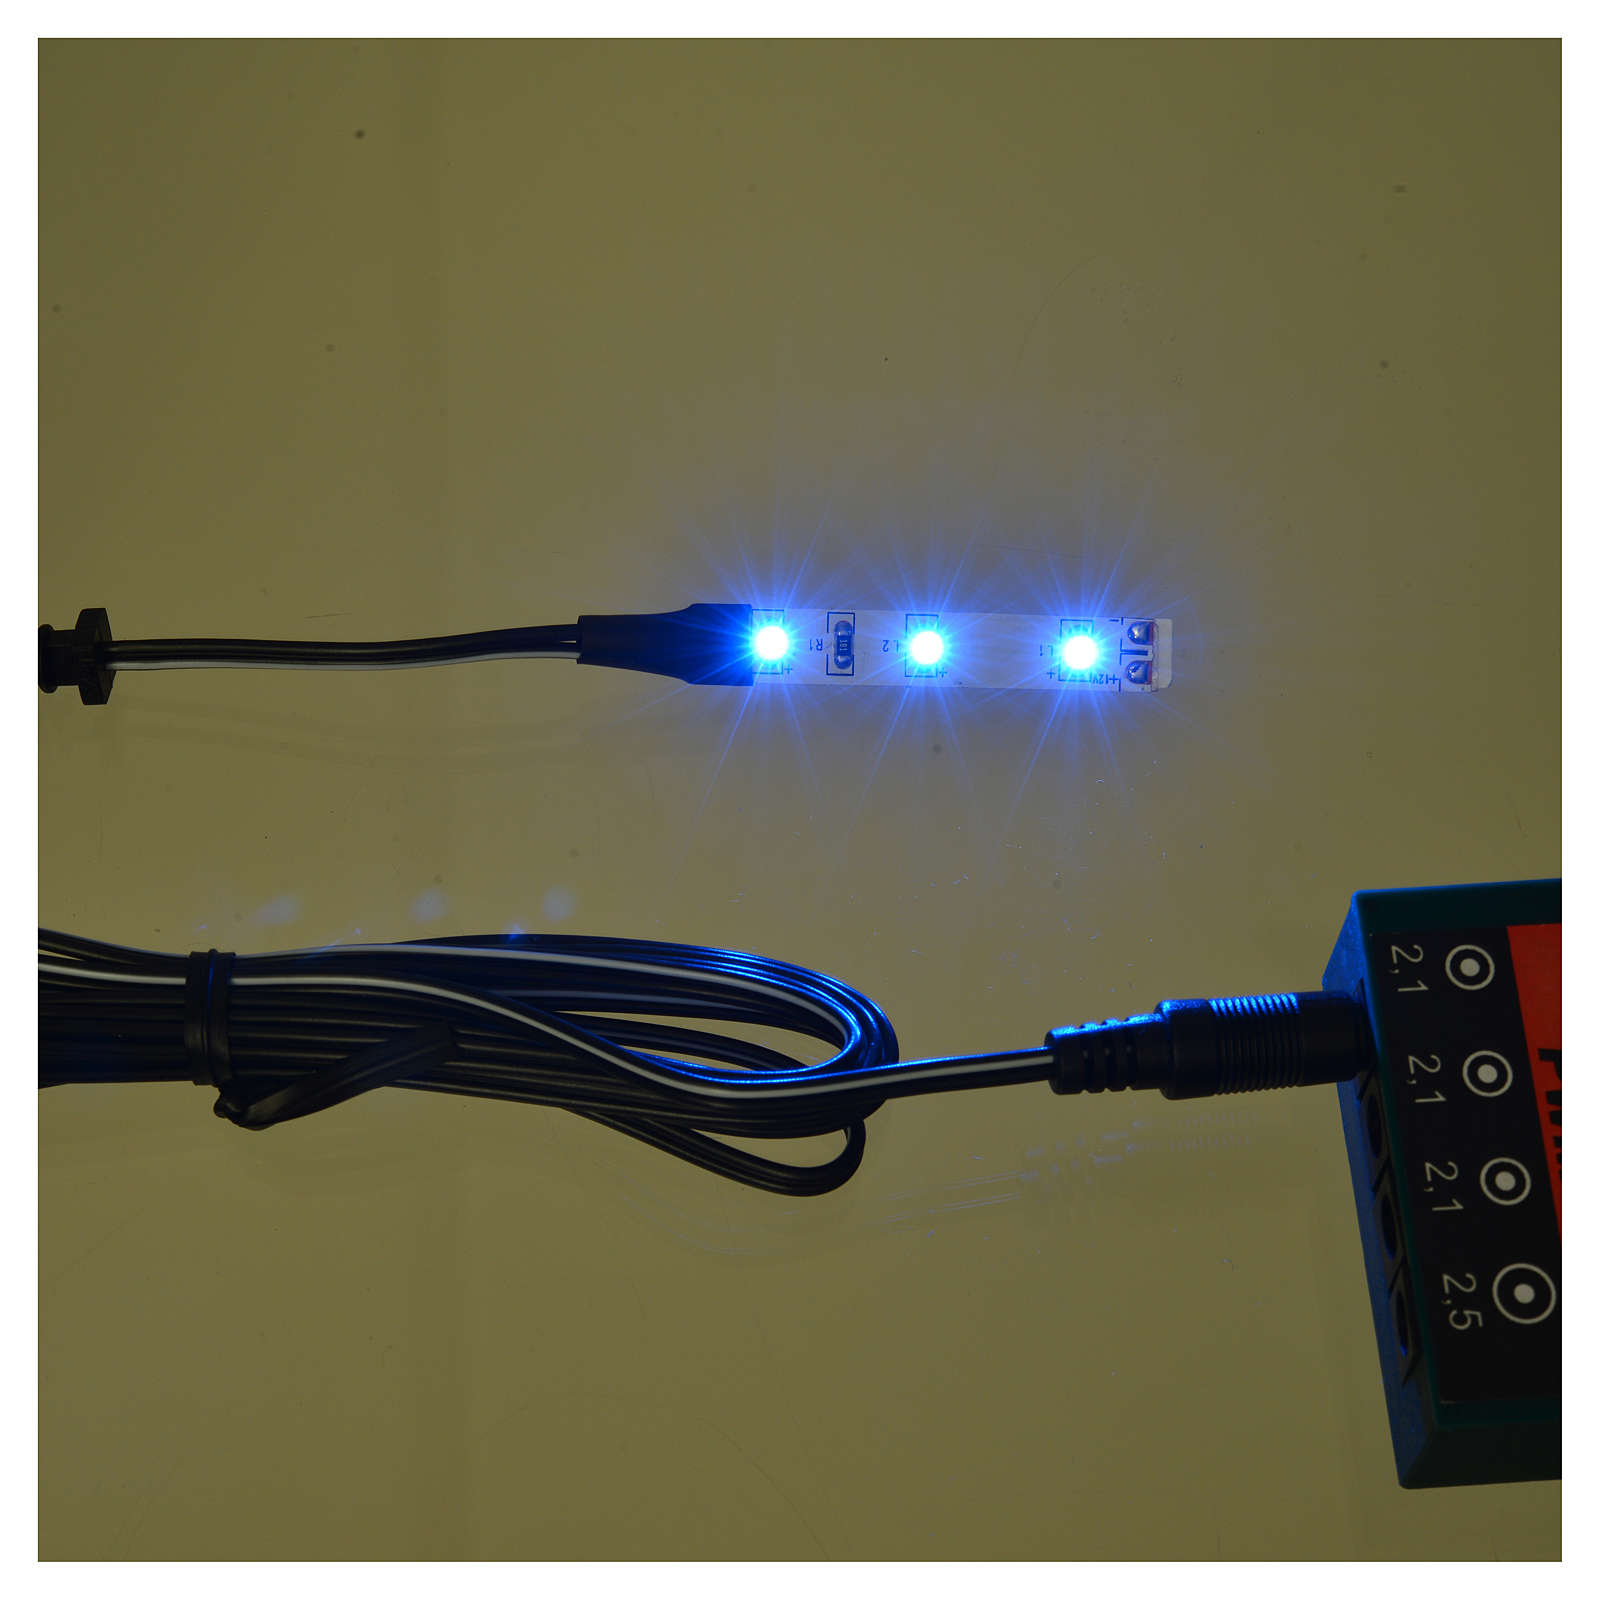 LED strip with 3 lights 0,8x4cm, blue for Frisalight 4